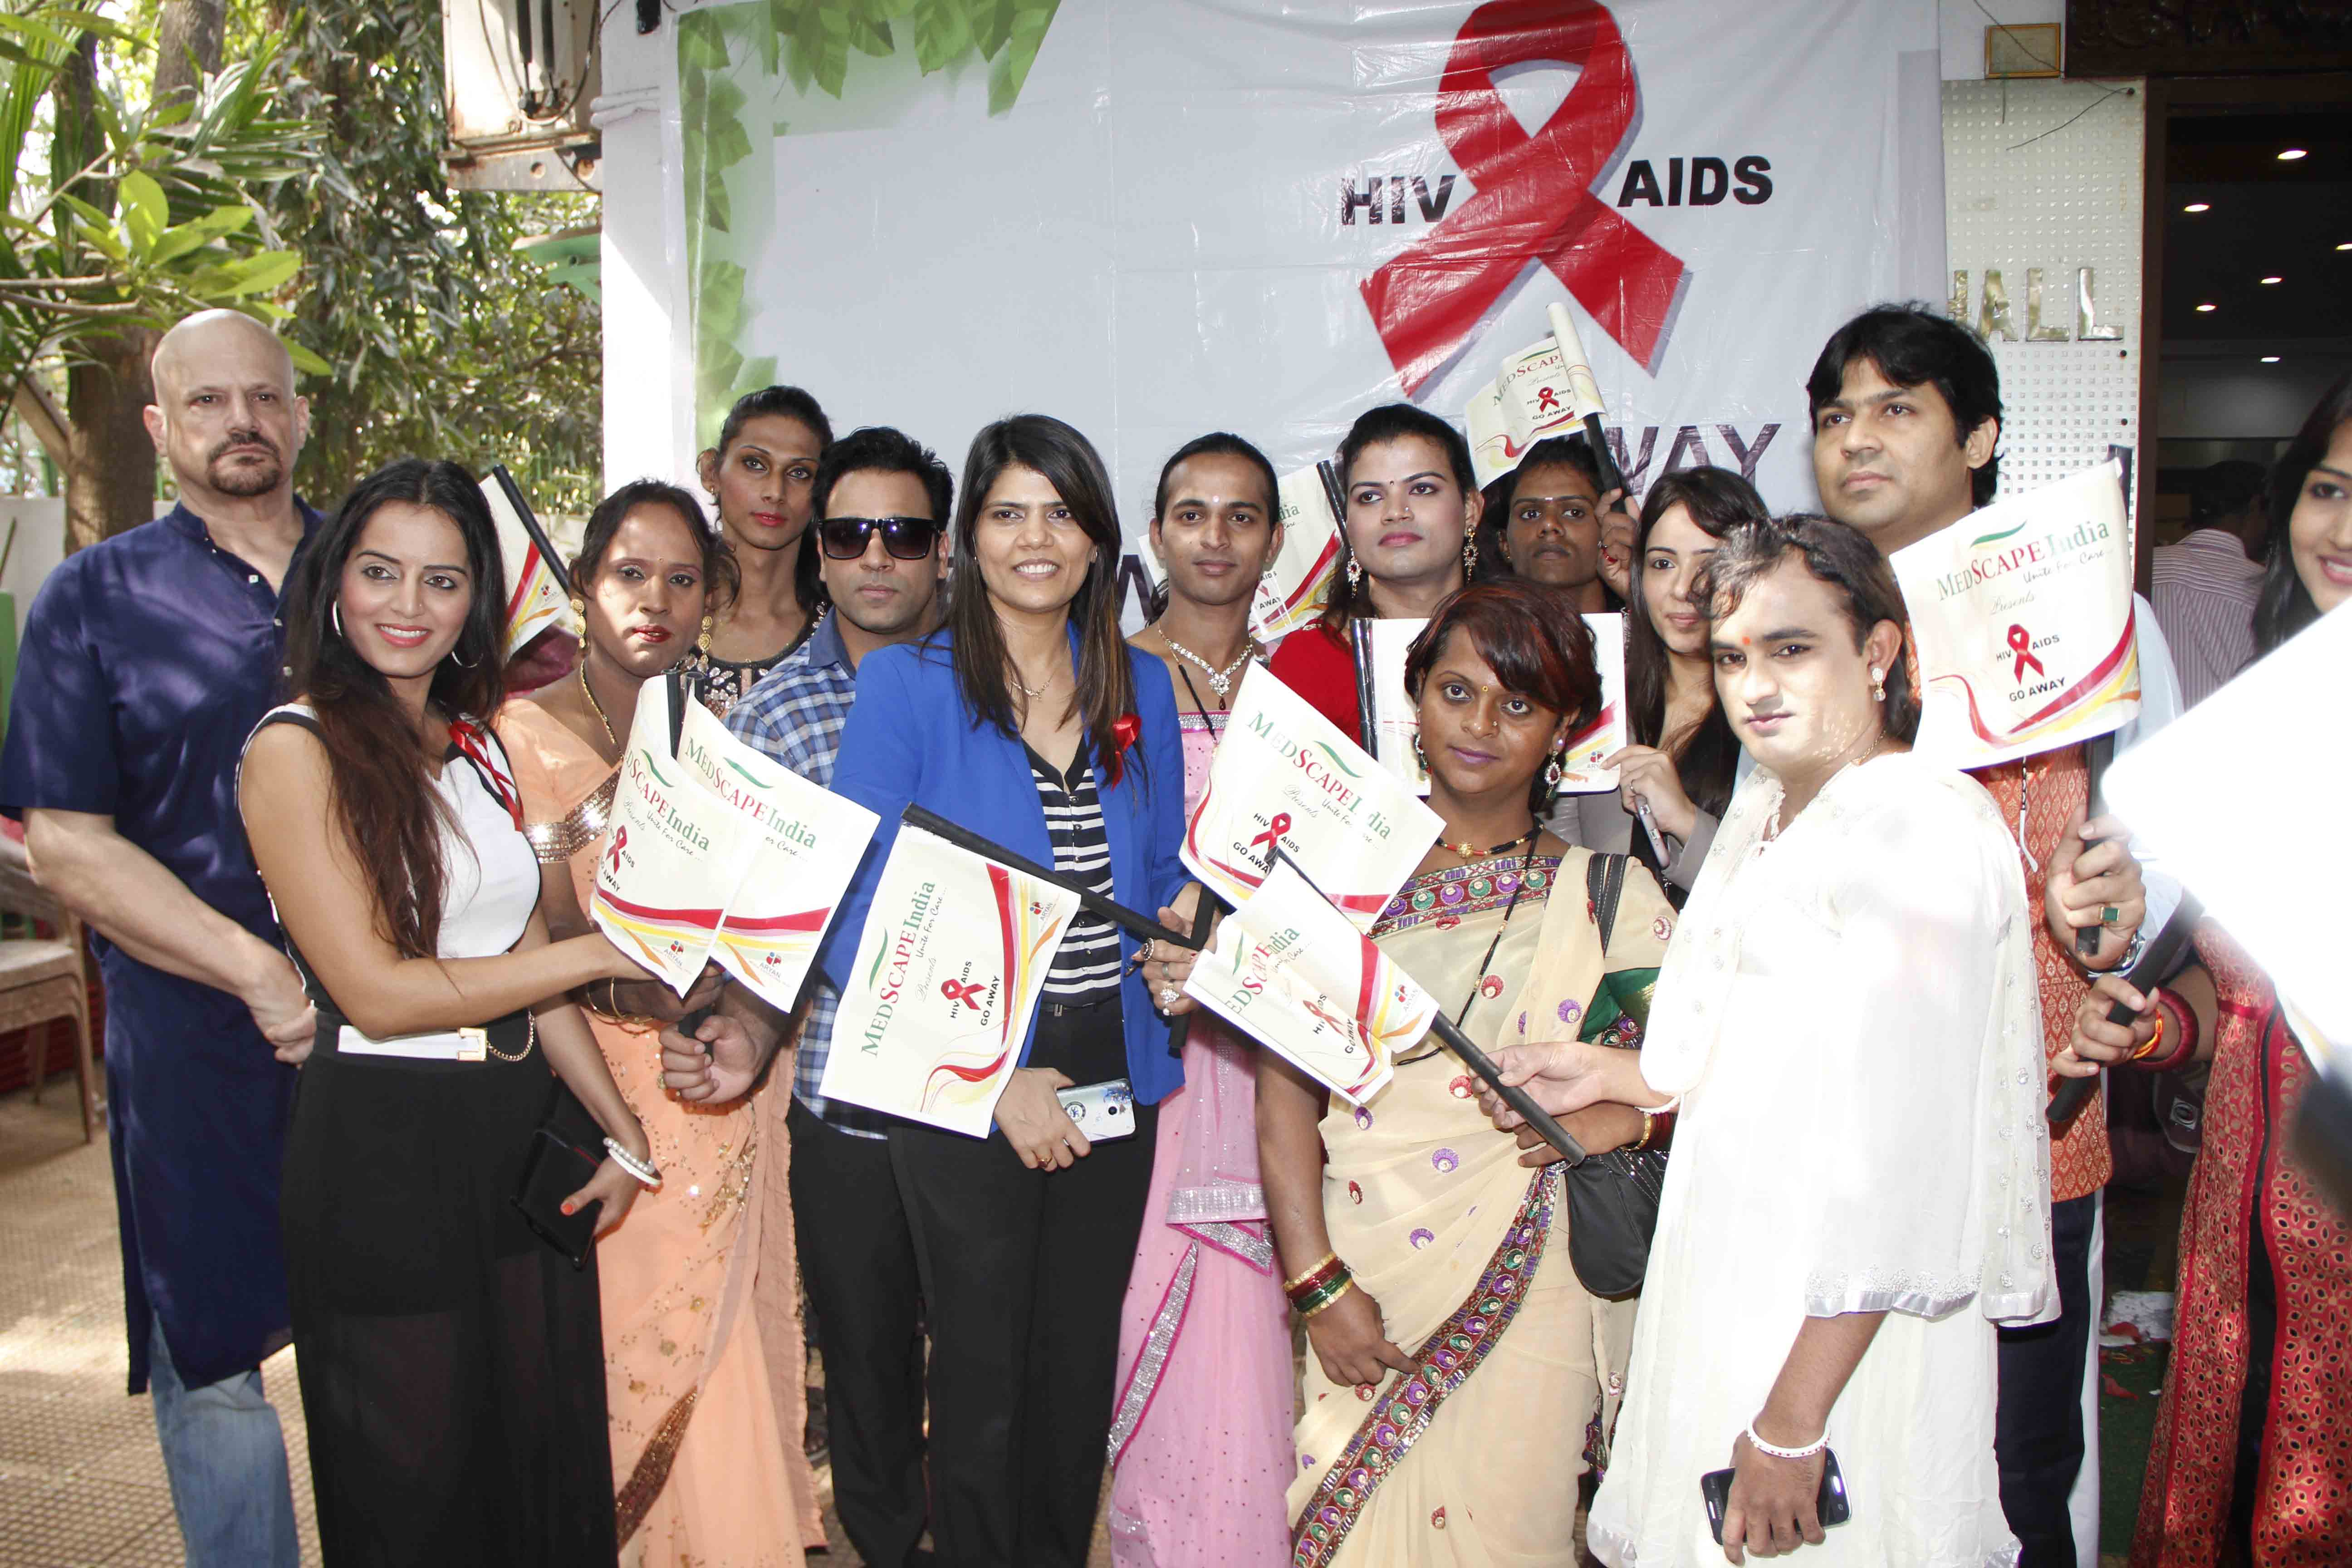 Enunh At World AIDS Day Event